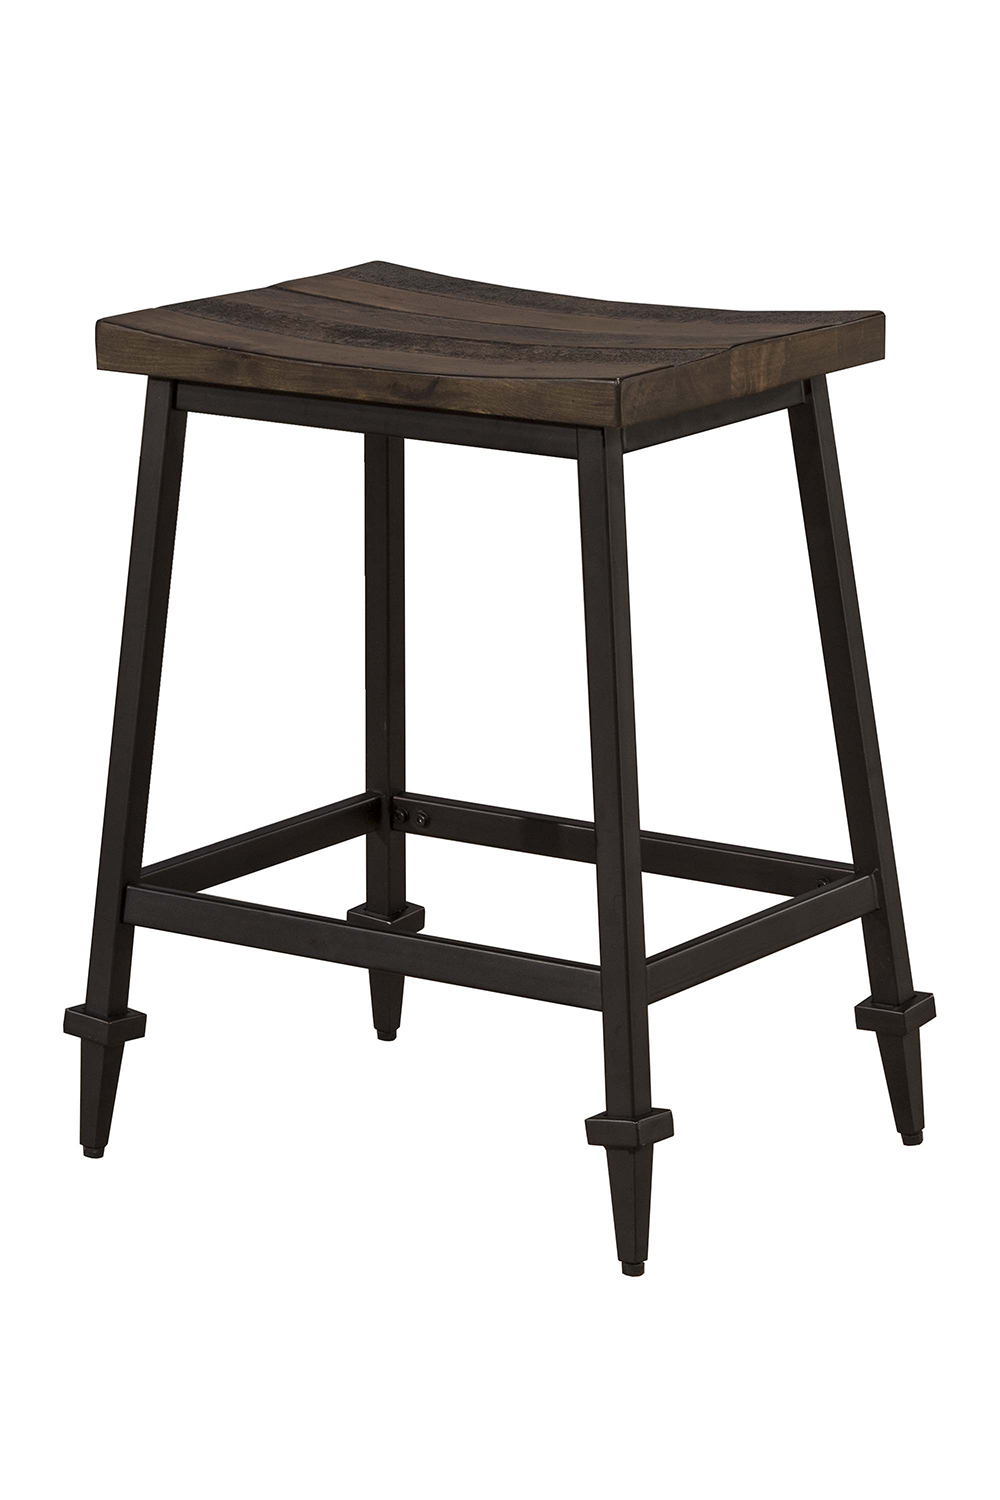 Hillsdale Trevino Non-Swivel Counter Height Stool - Walnut/Brown